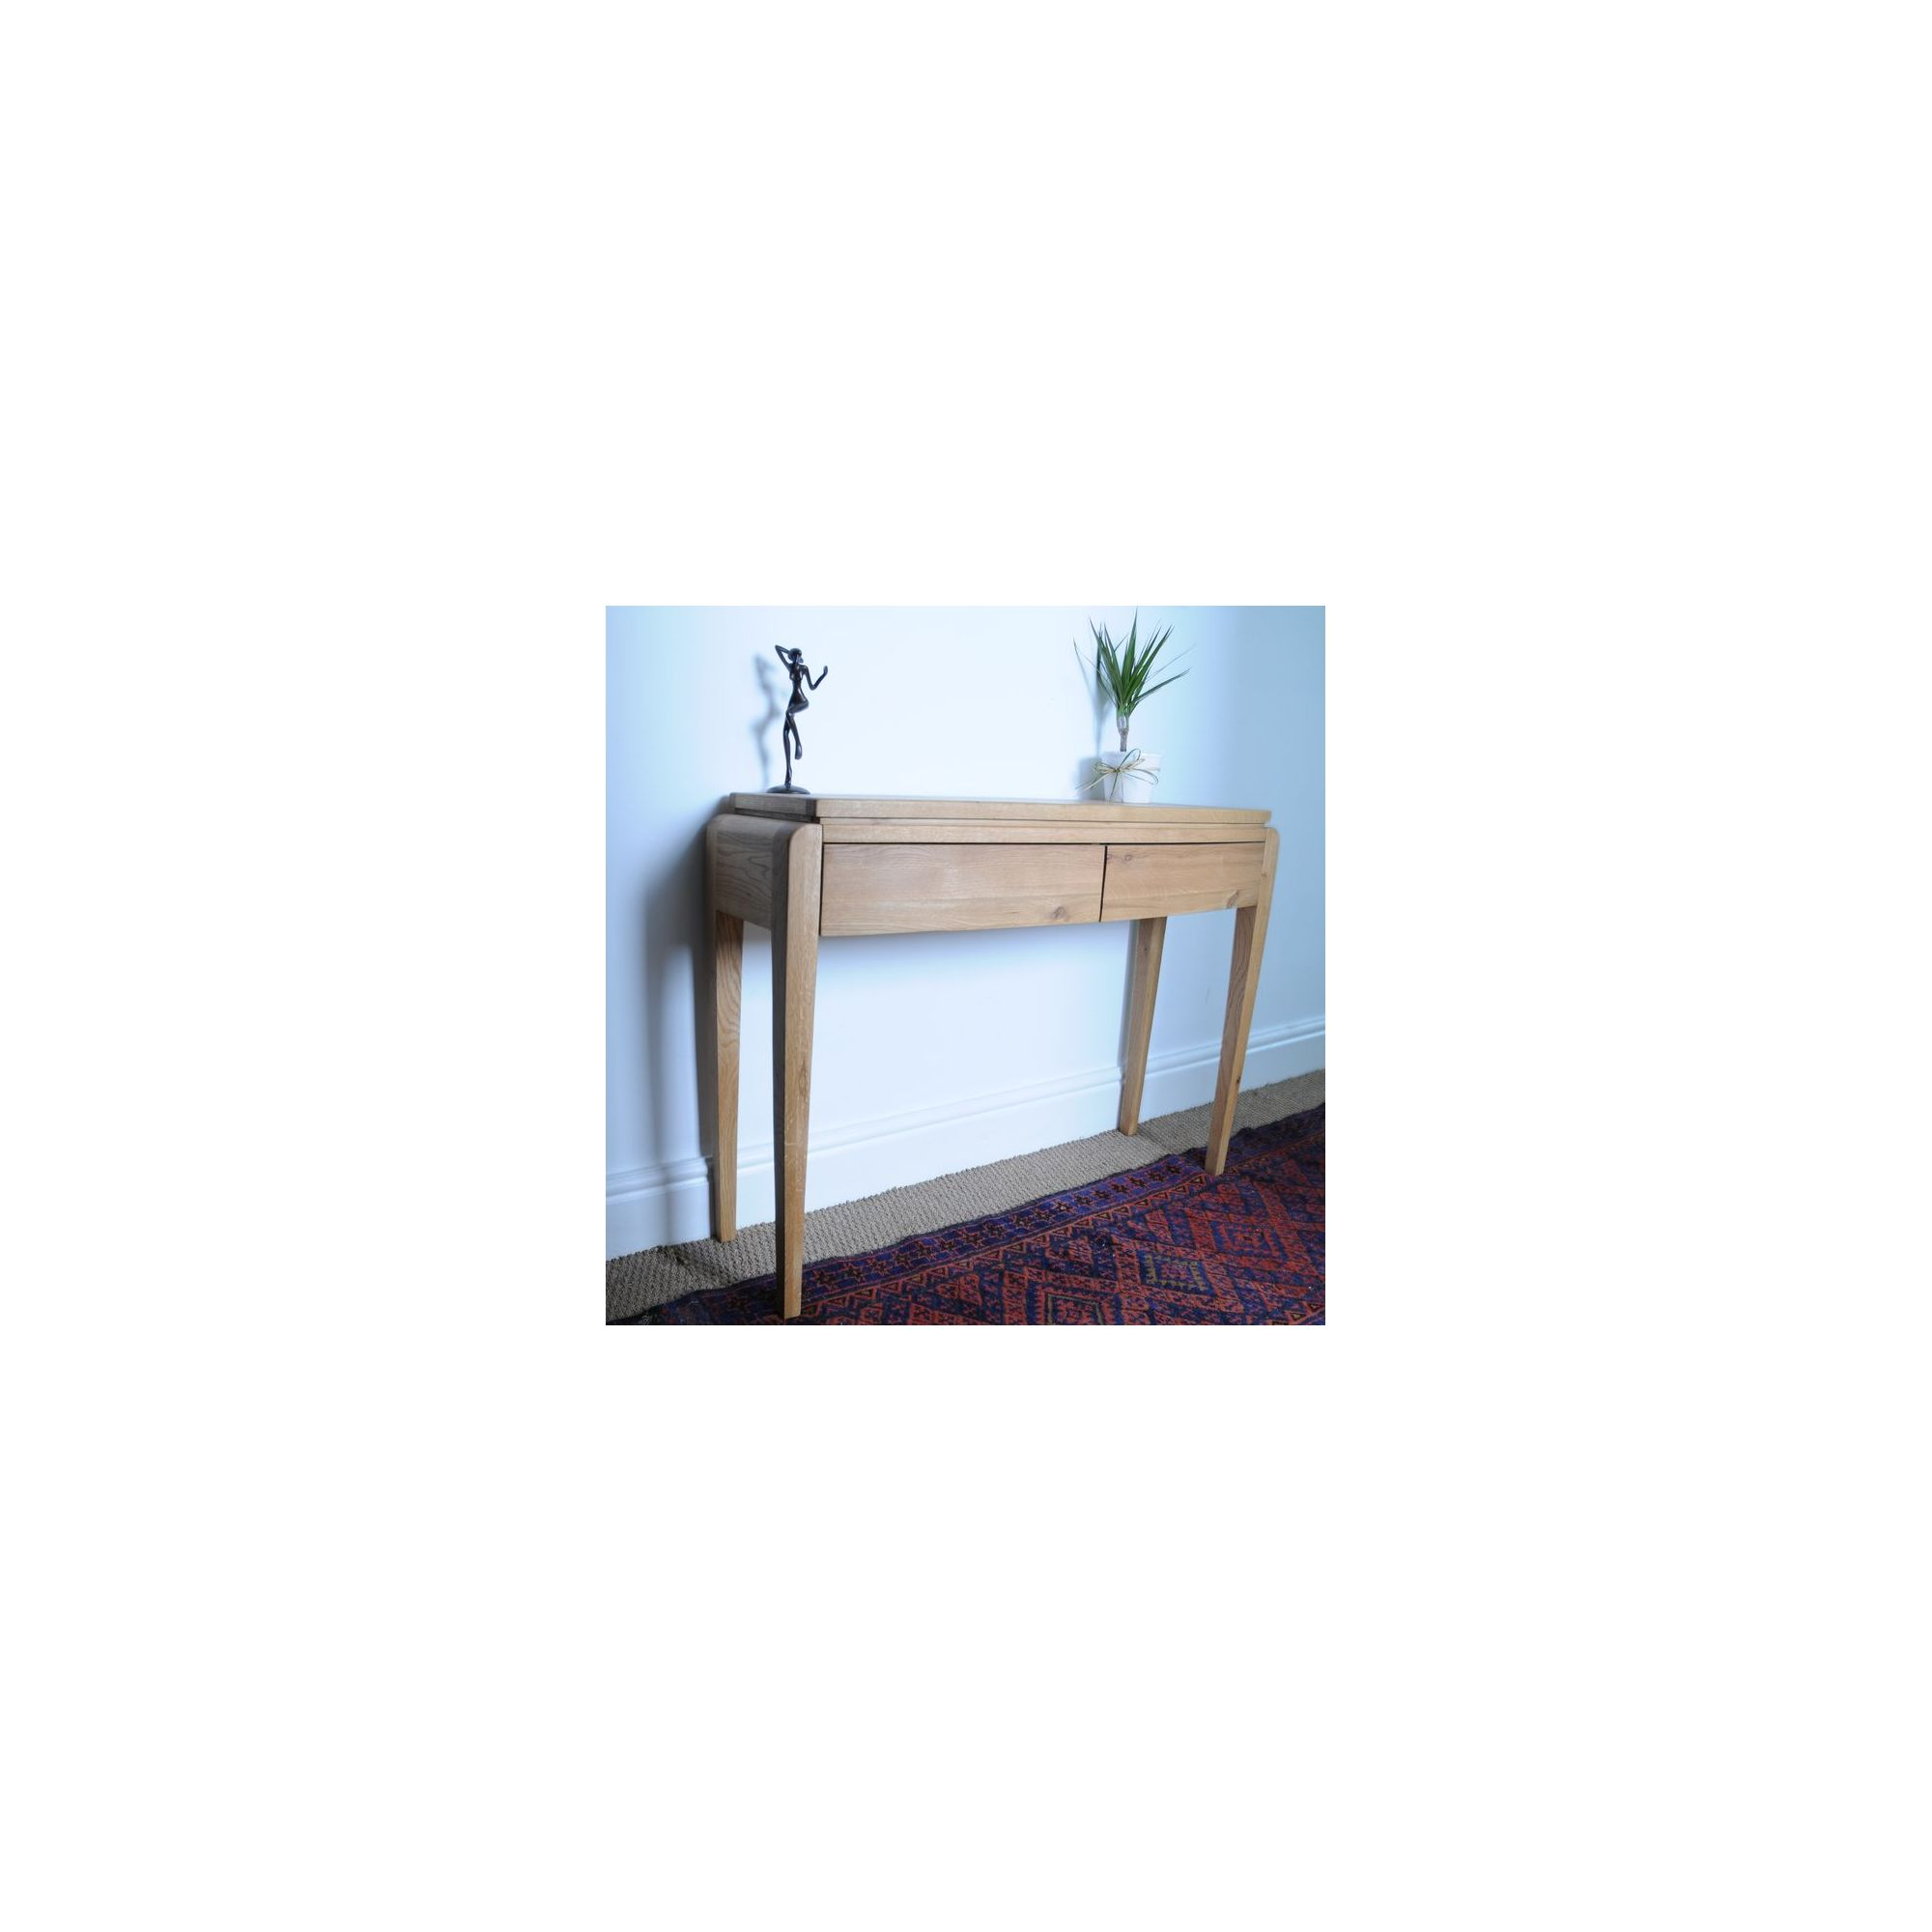 Oceans Apart Belvedere Oak Small Console Table at Tesco Direct